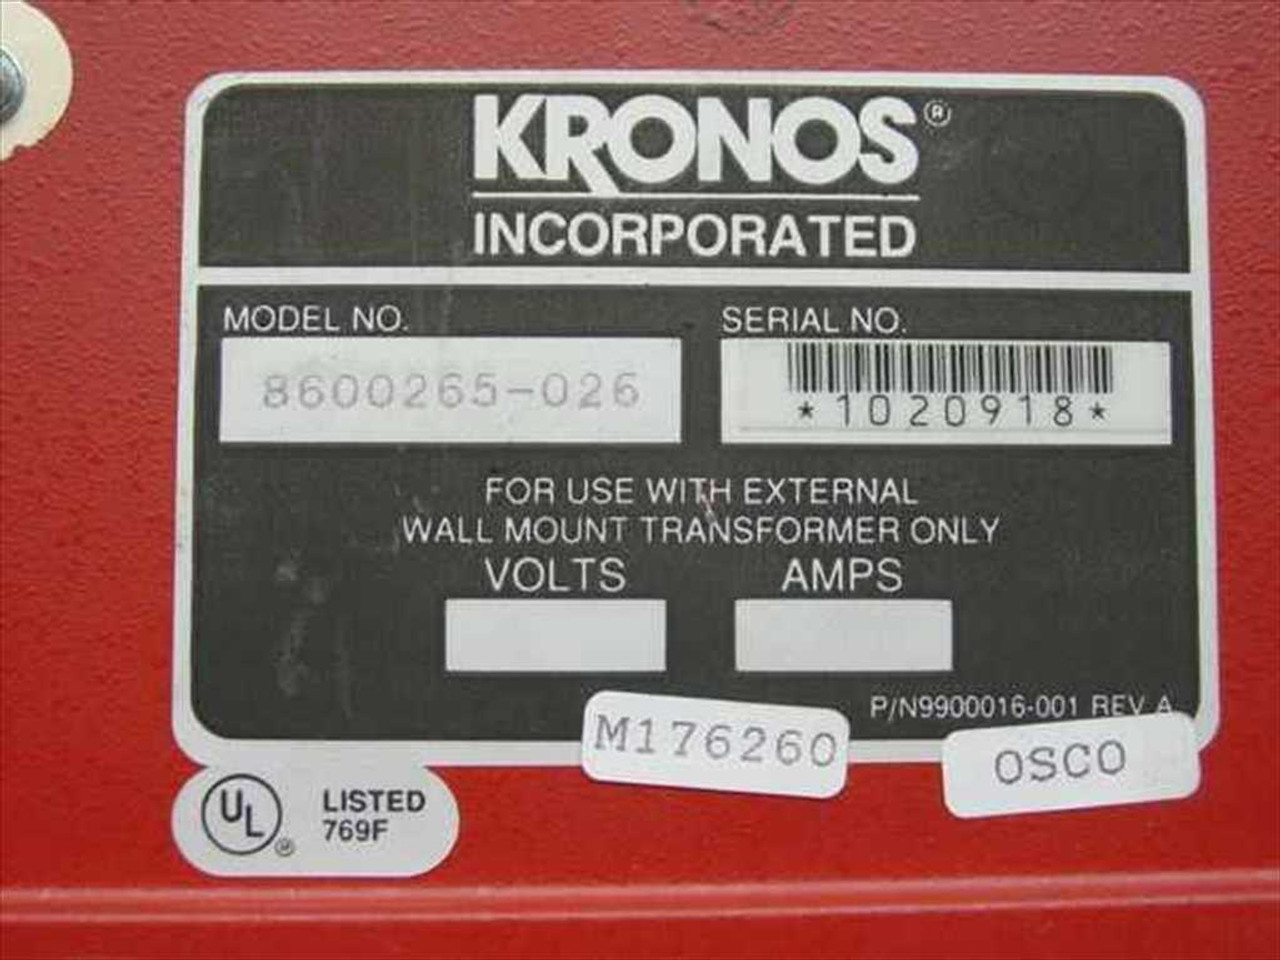 Kronos 480f Time Clock For Sale: Kronos 8600265-026 Wall Time Clock